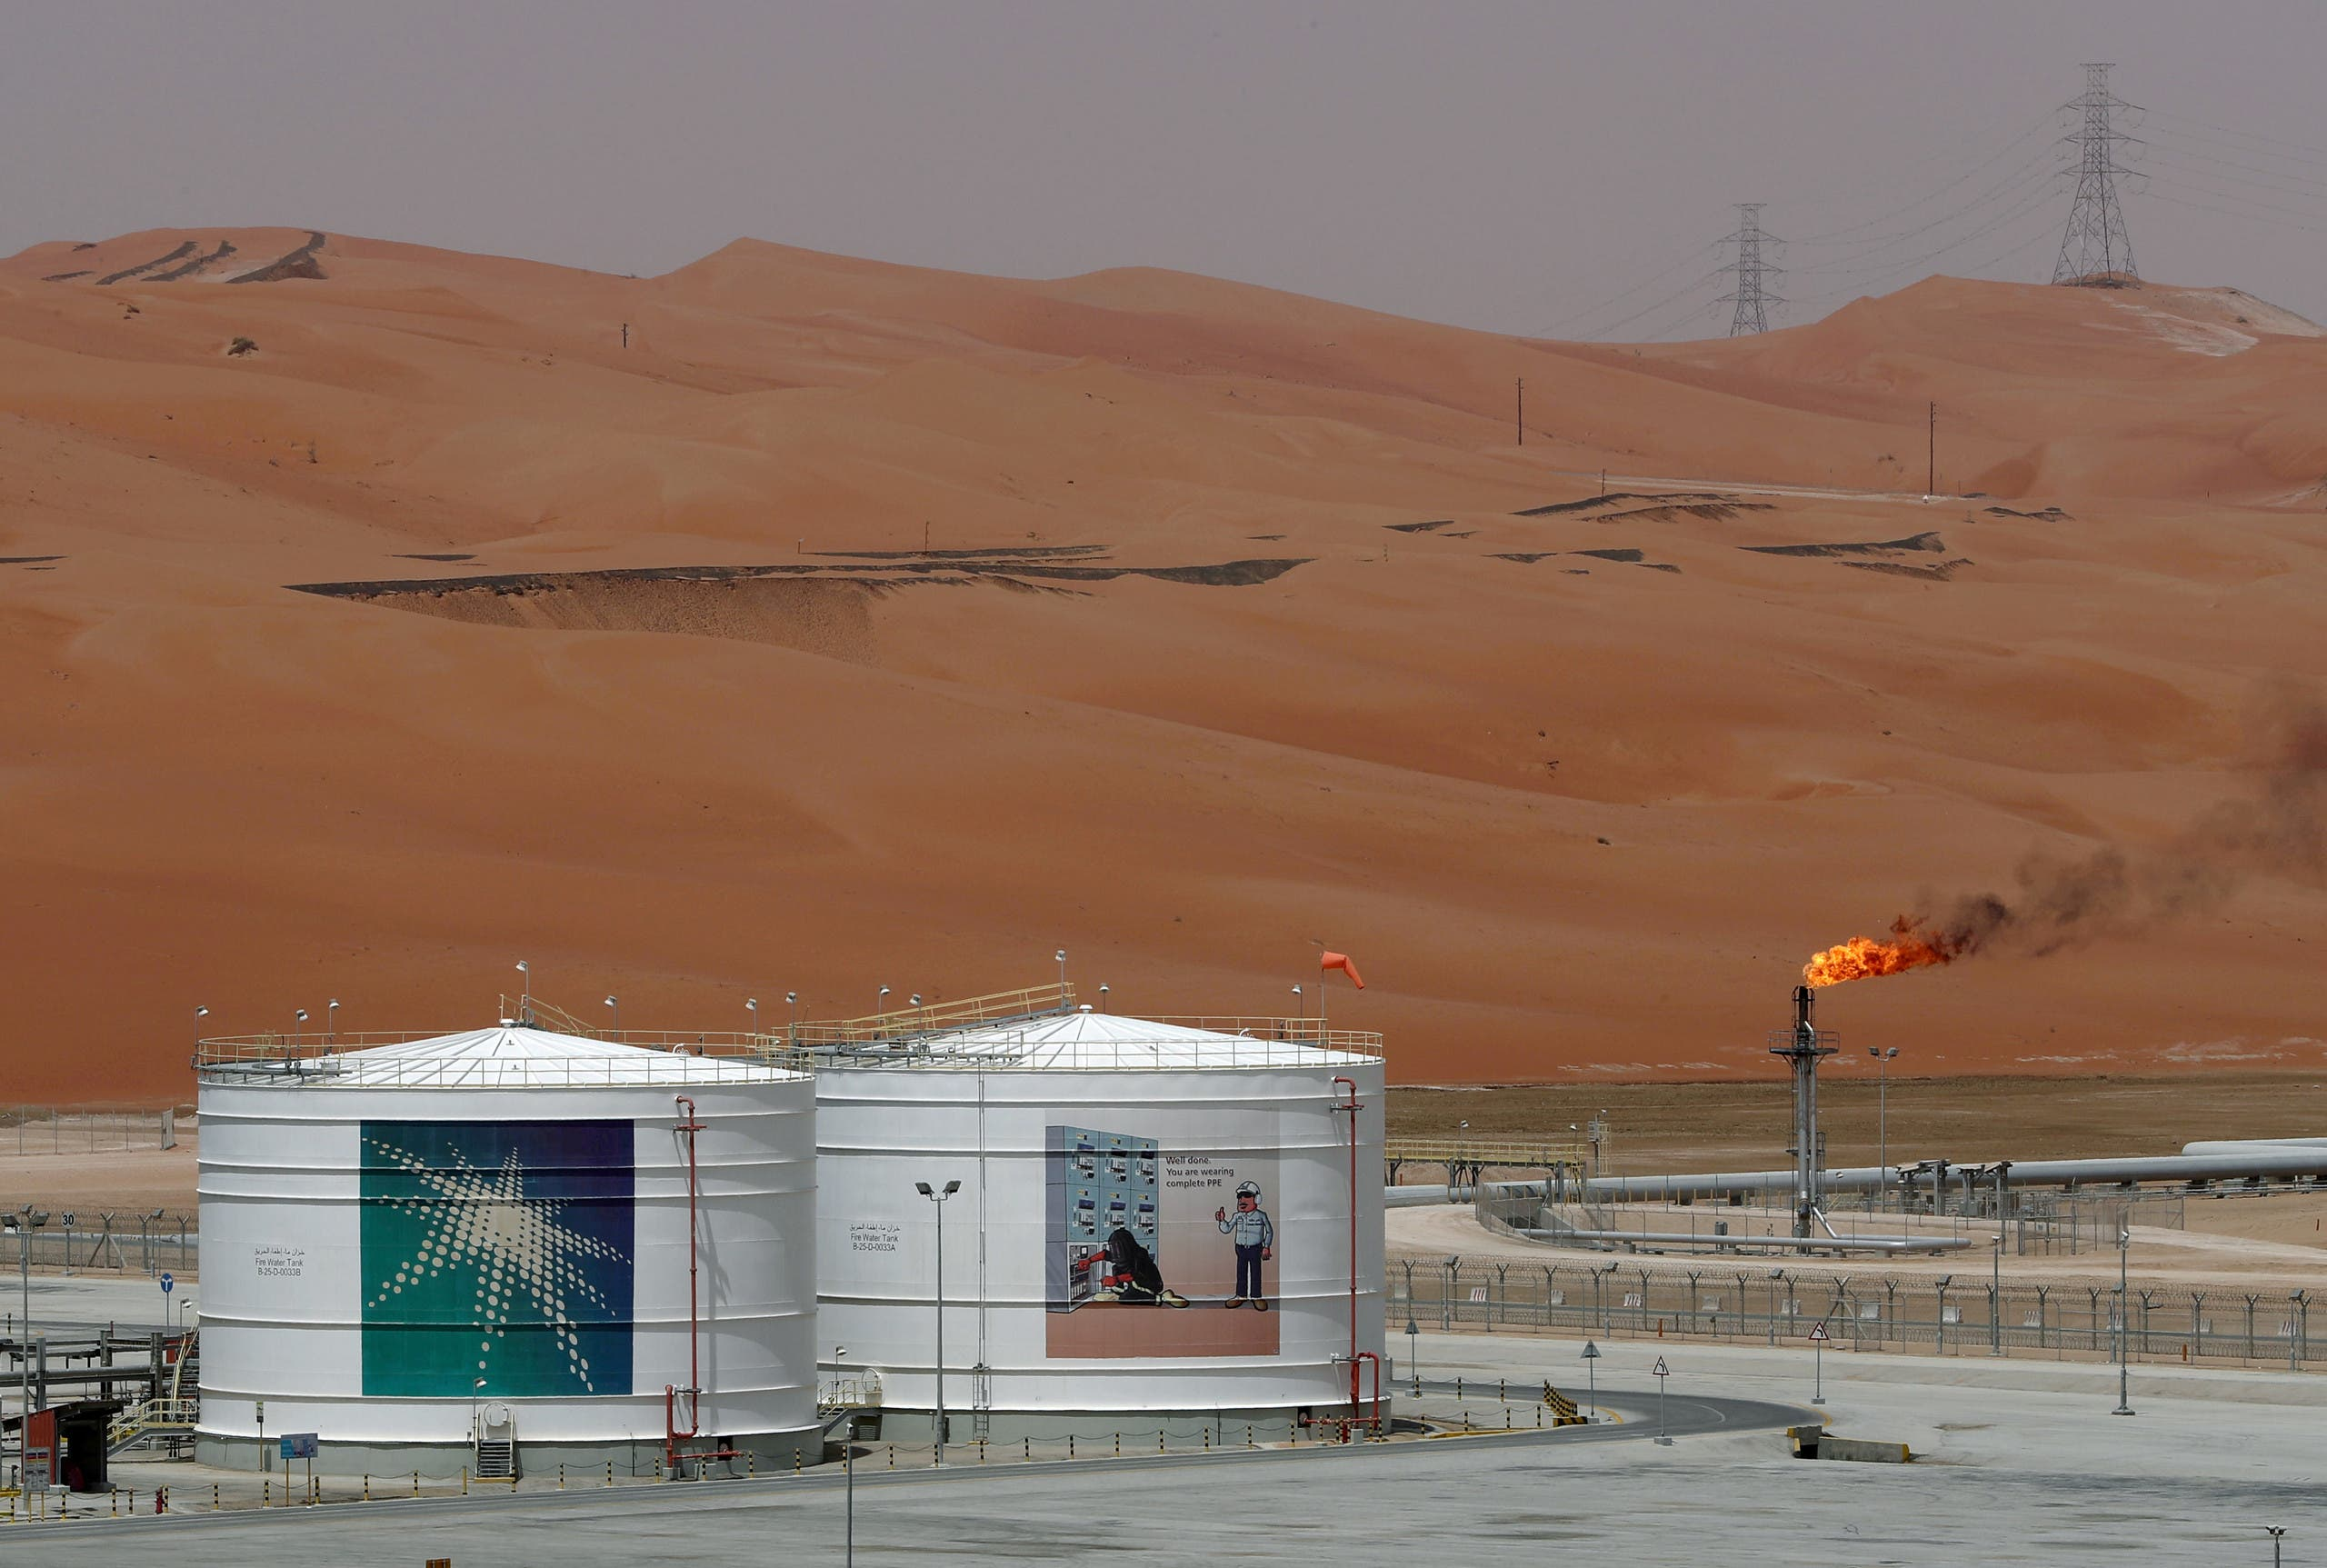 A production facility is seen at Saudi Aramco's Shaybah oilfield in the Empty Quarter, Saudi Arabia. (File photo: Reuters)